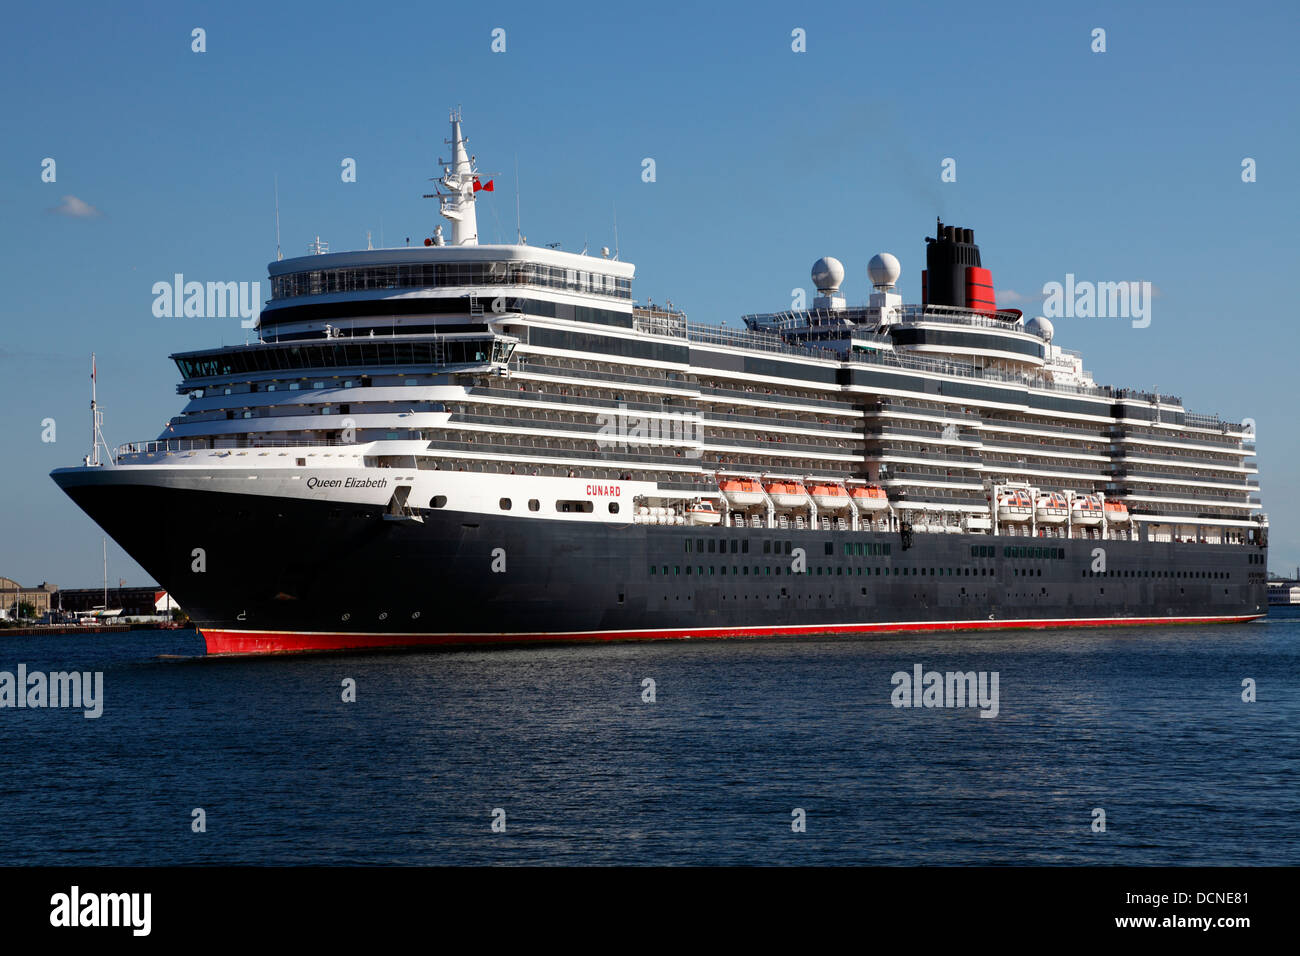 the-newest-ms-queen-elizabeth-cruise-shi